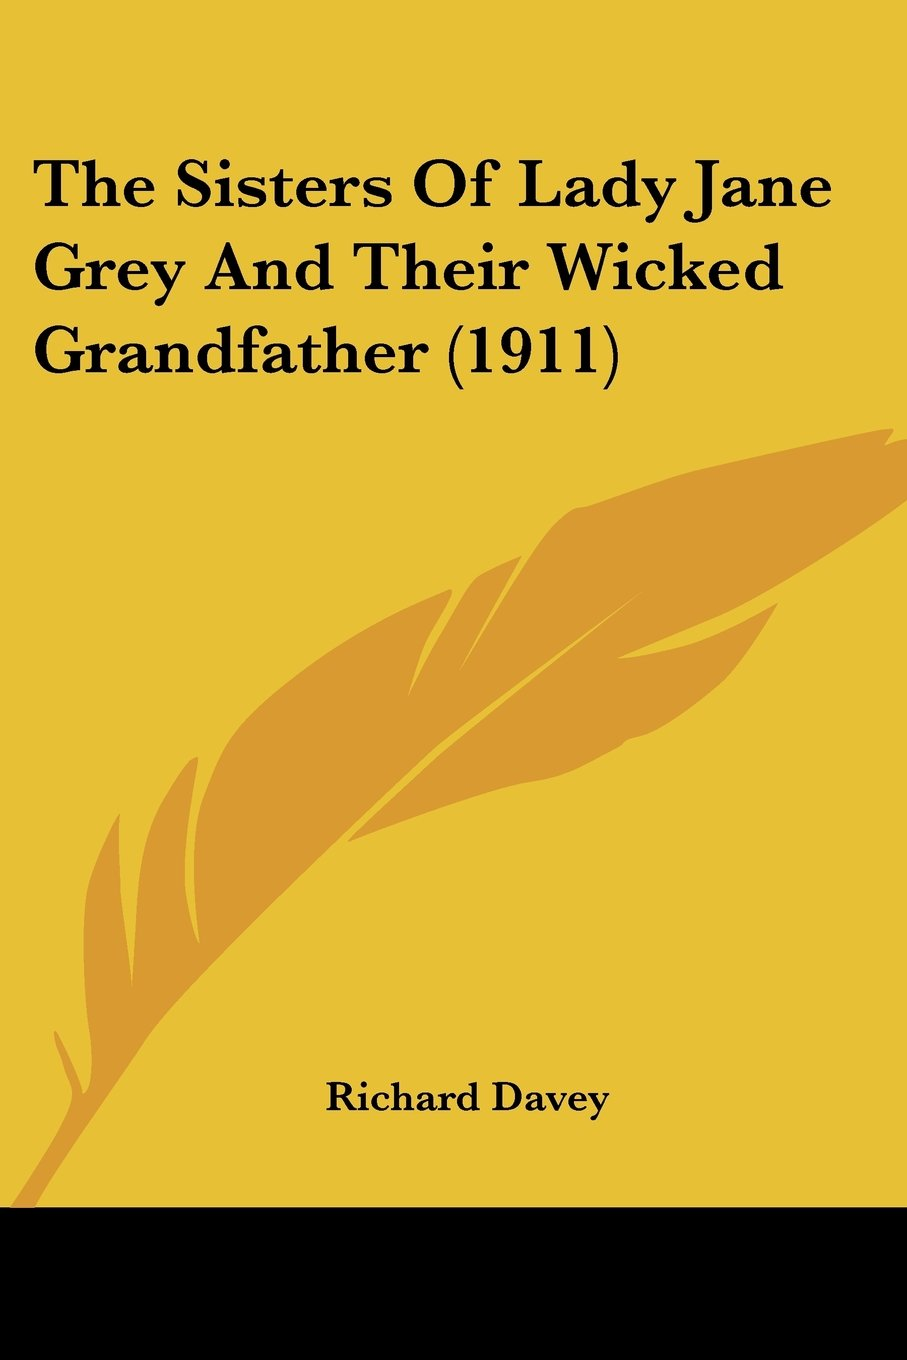 The Sisters Of Lady Jane Grey And Their Wicked Grandfather (1911) ePub fb2 ebook